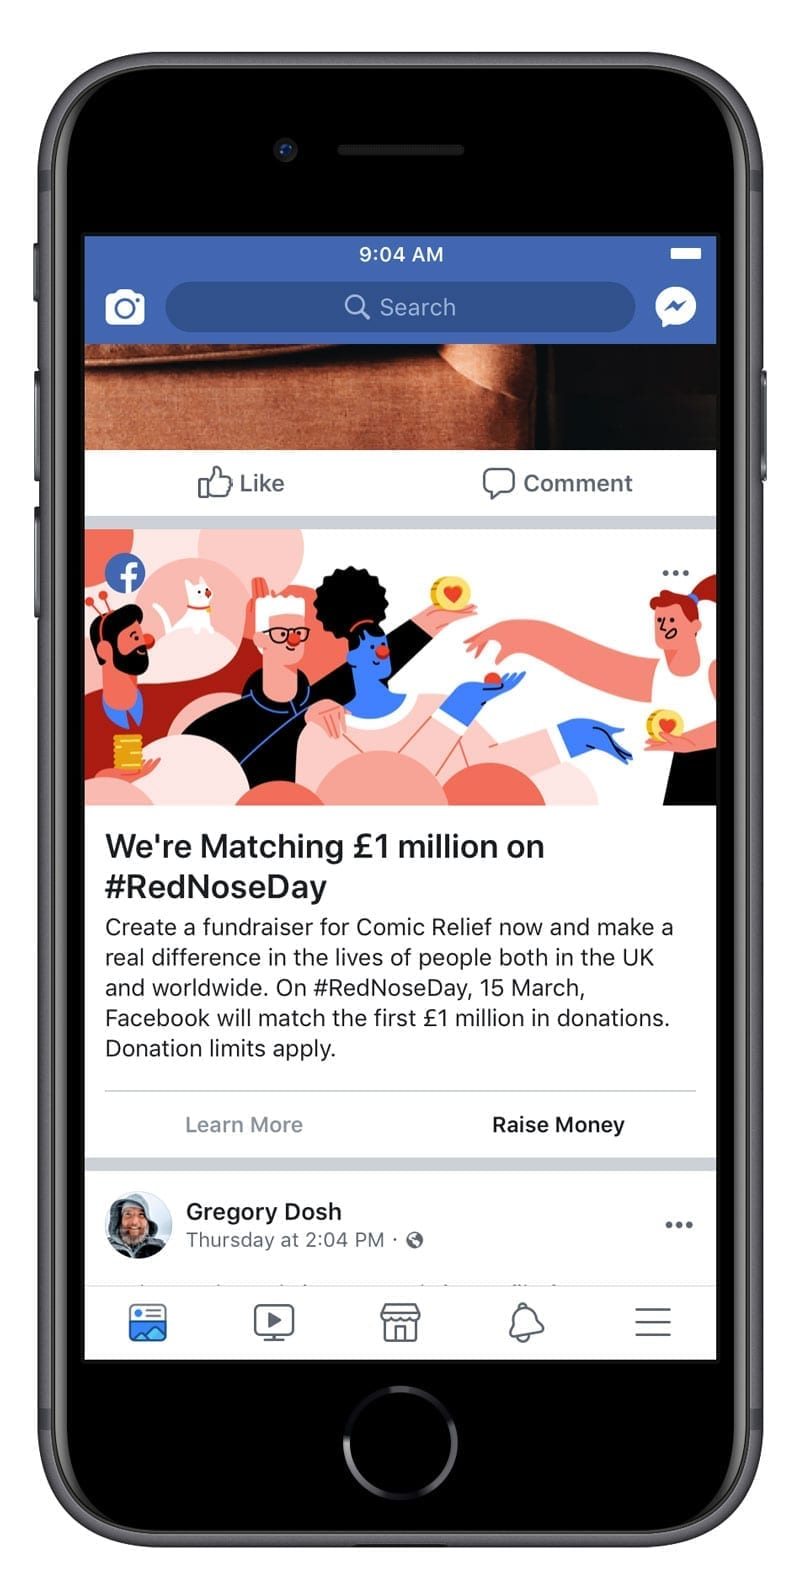 Facebook supports Red Nose Day with £1 million matched